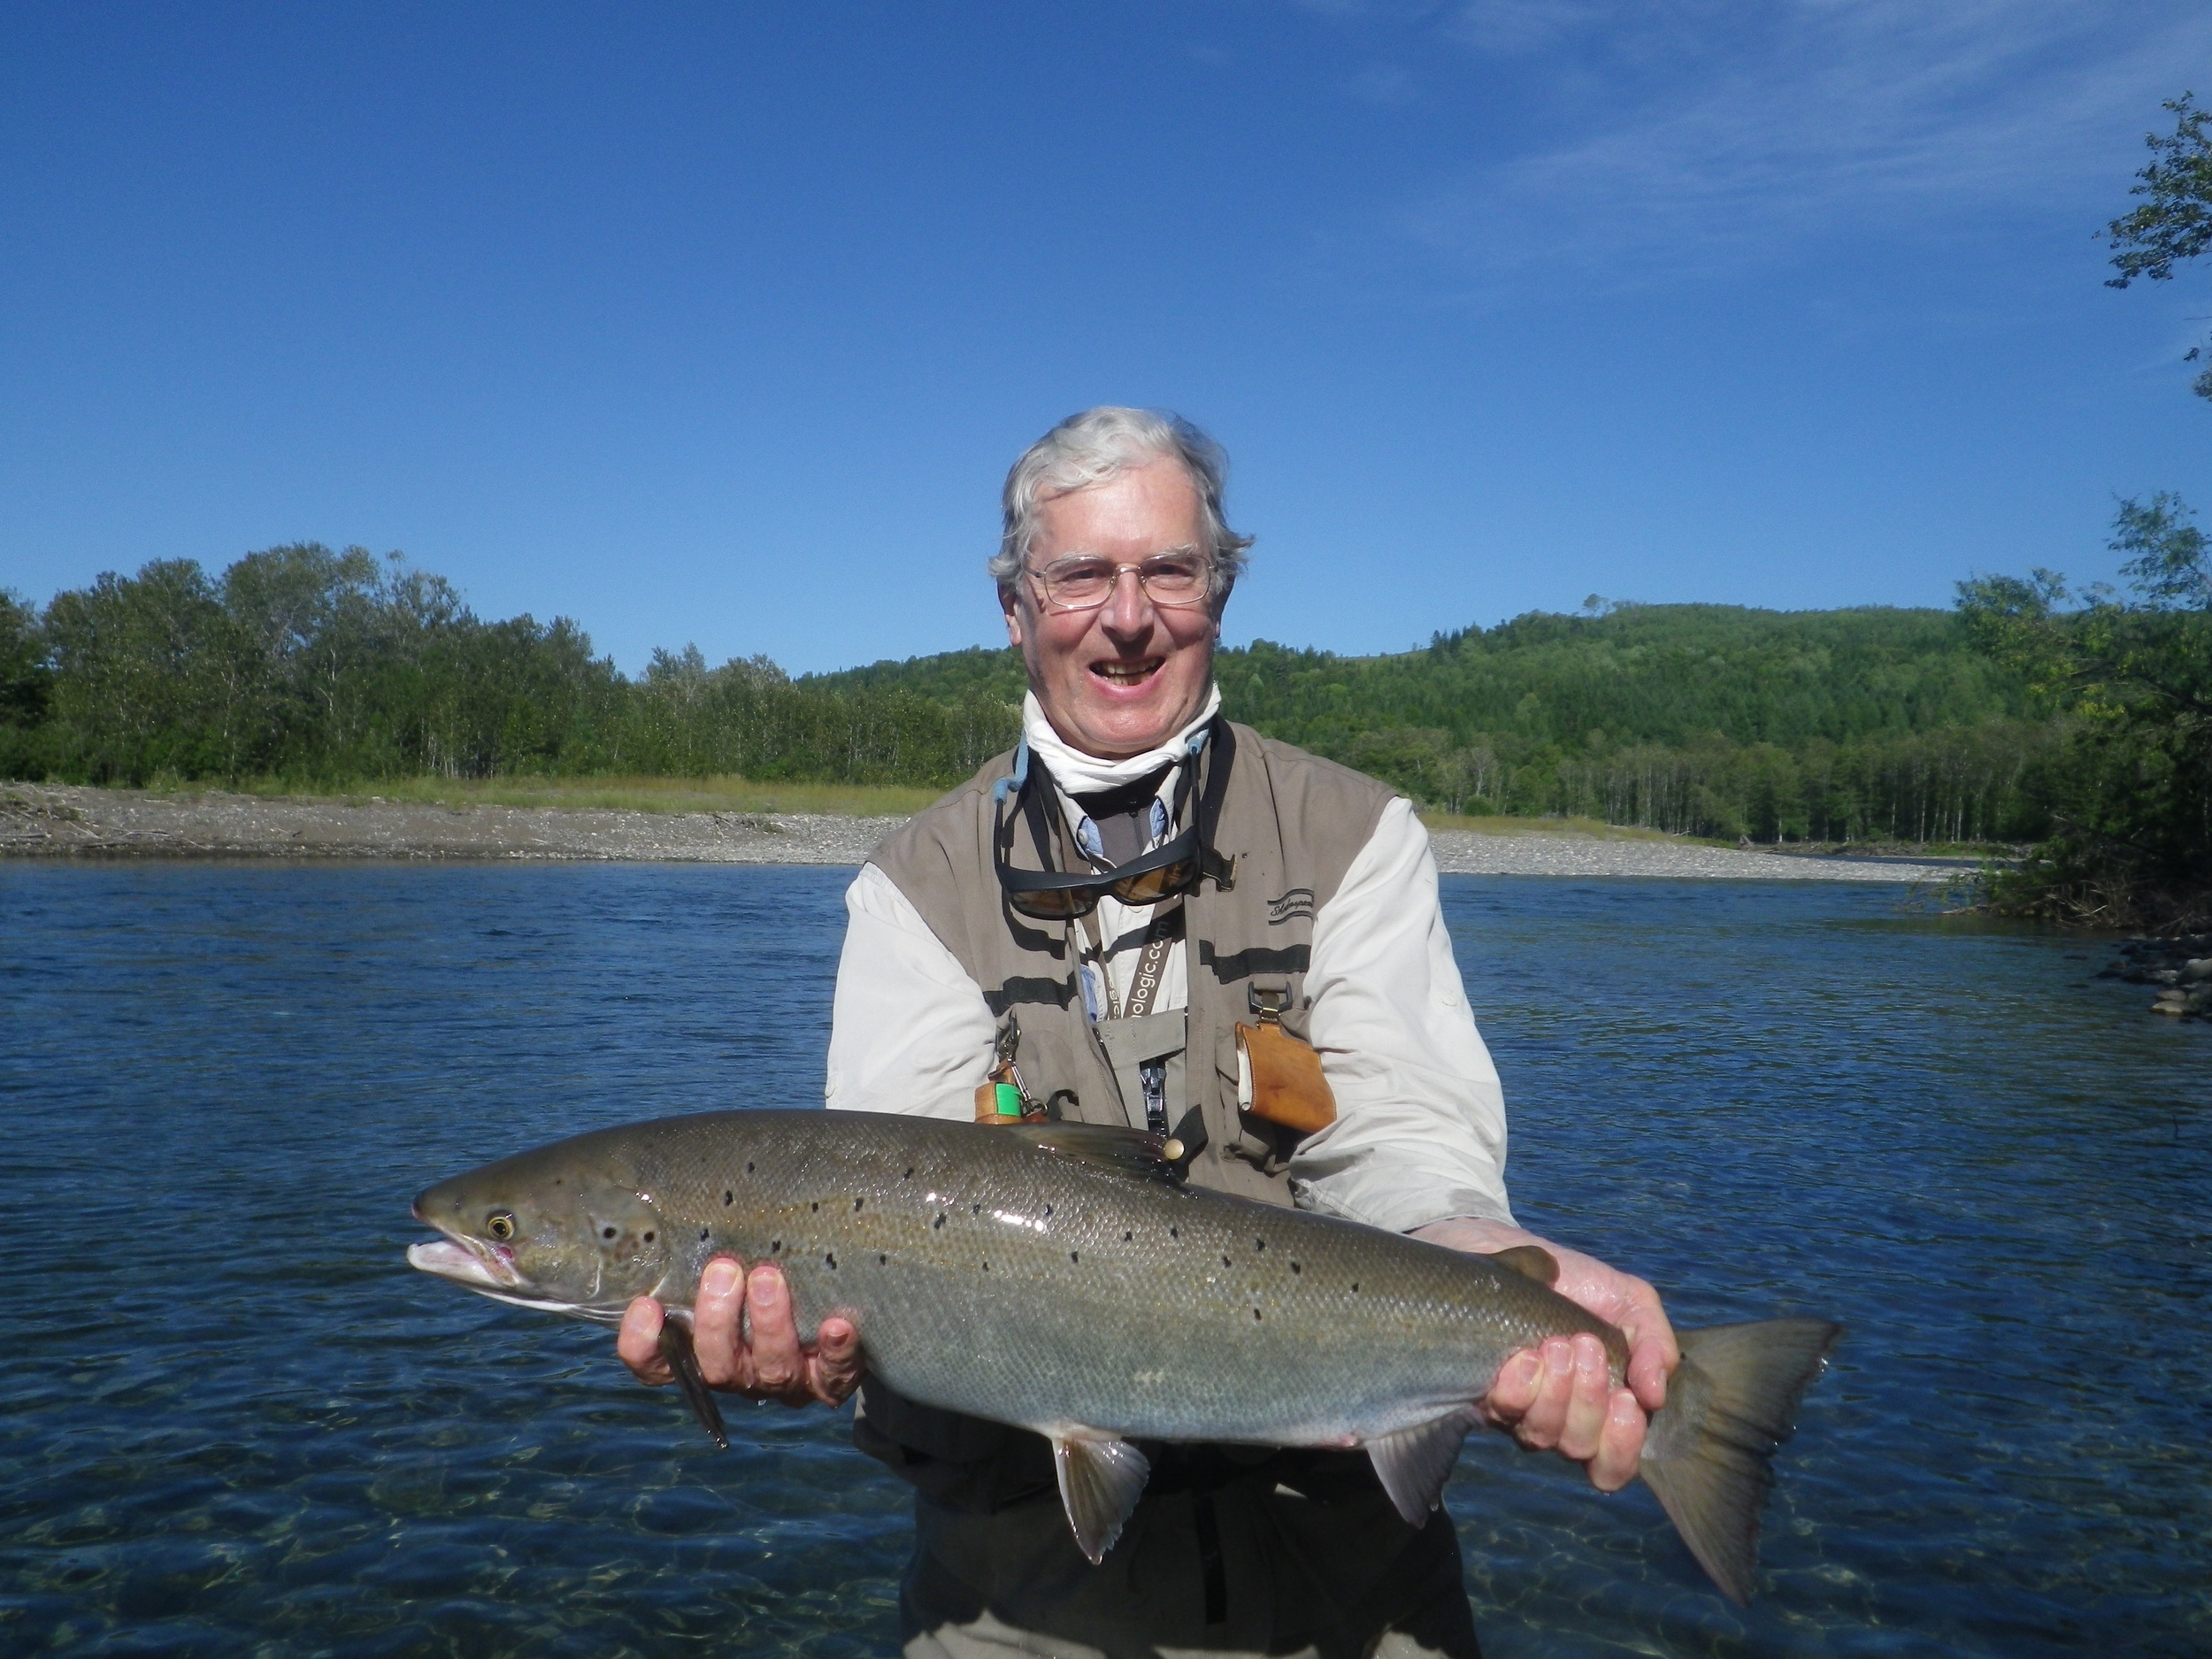 Tim Ingram with a fine salmon on the Petiote Cascapedia, nice one Tim! see you next season.